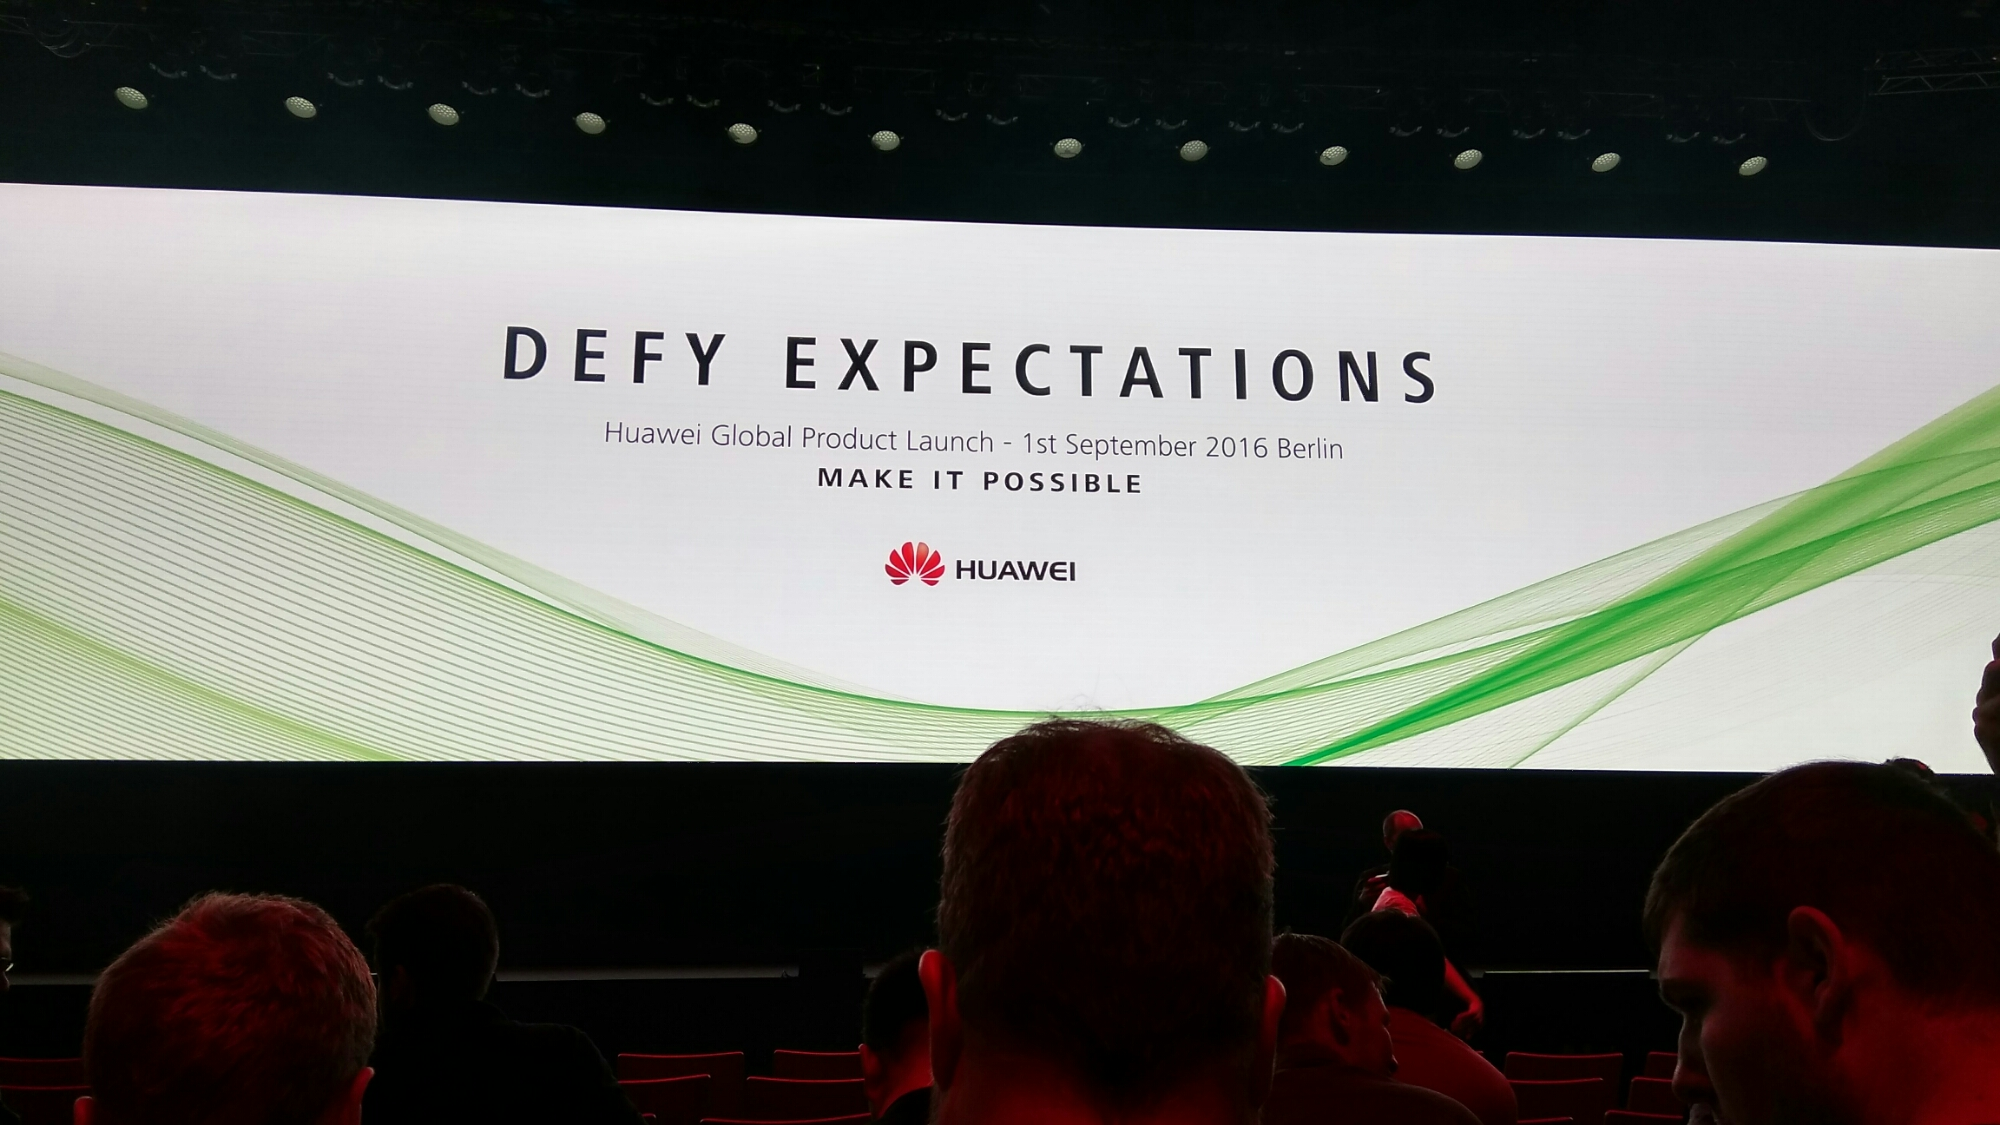 IFA Berlin 2016   Huawei Press Conference #DefyExpectations